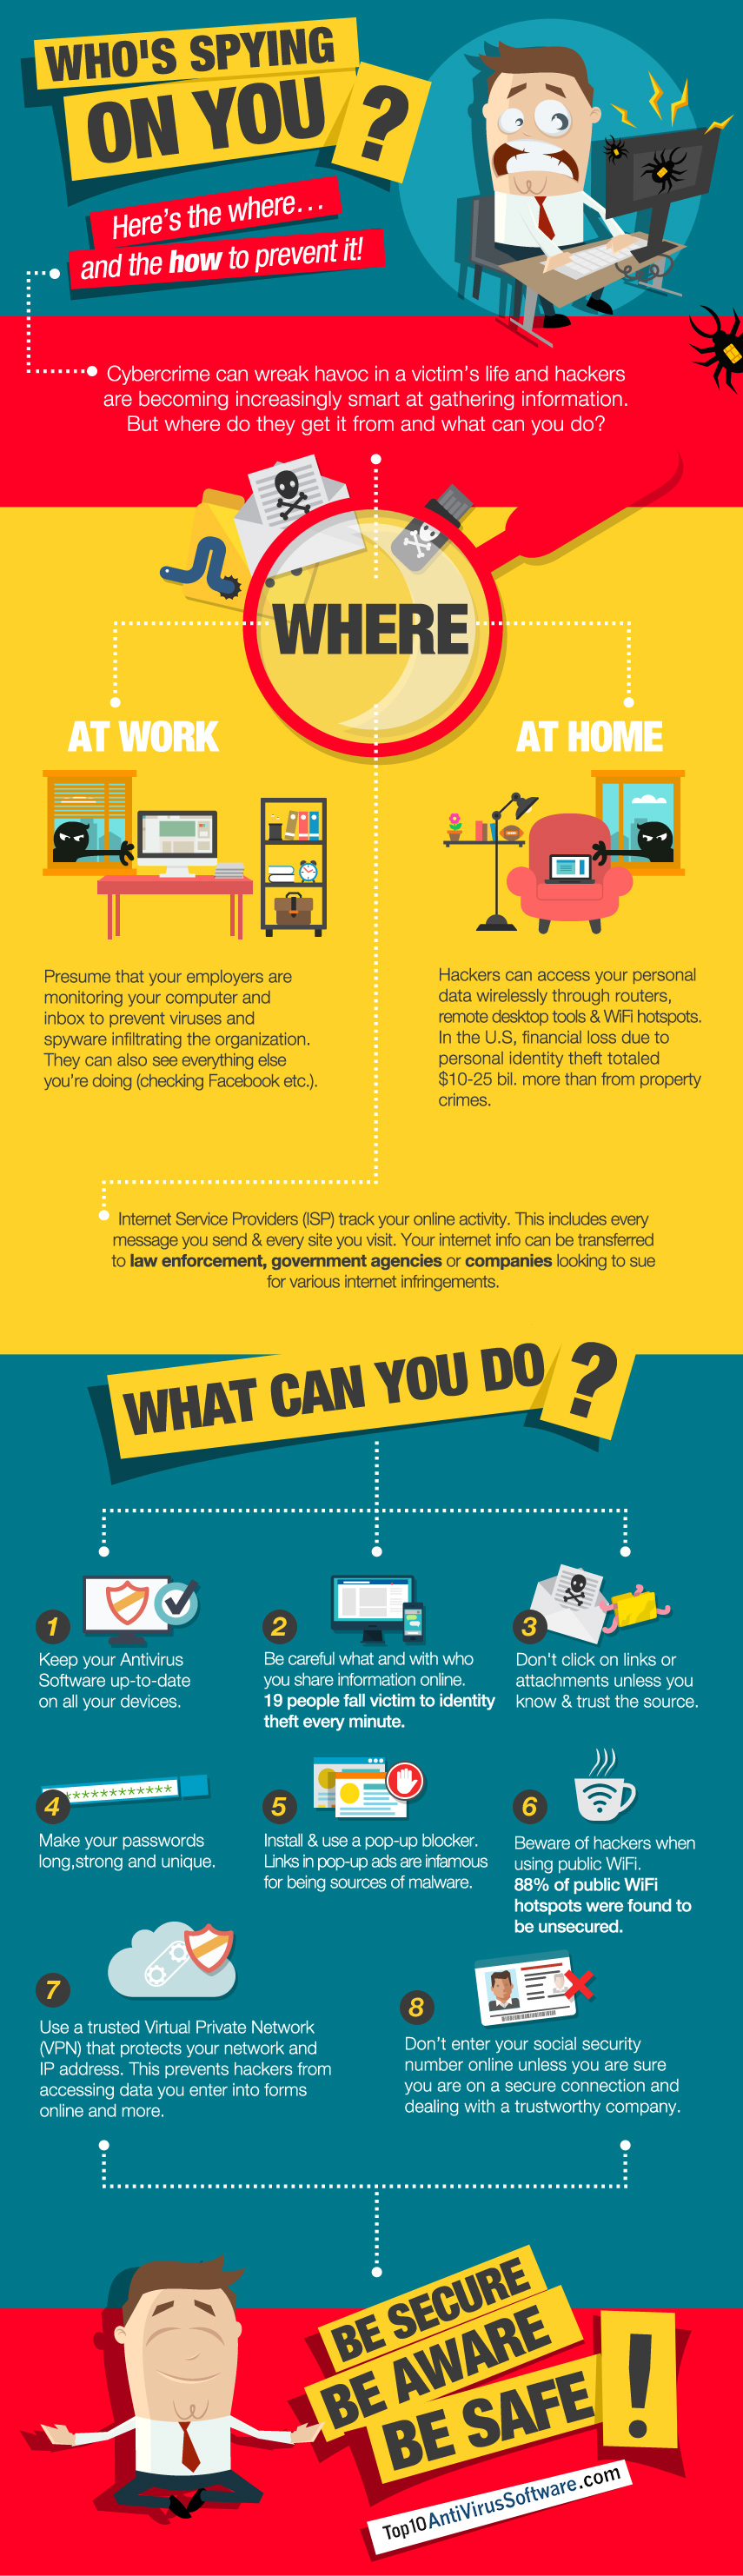 Who Is Spying on You Right Now? [Infographic]